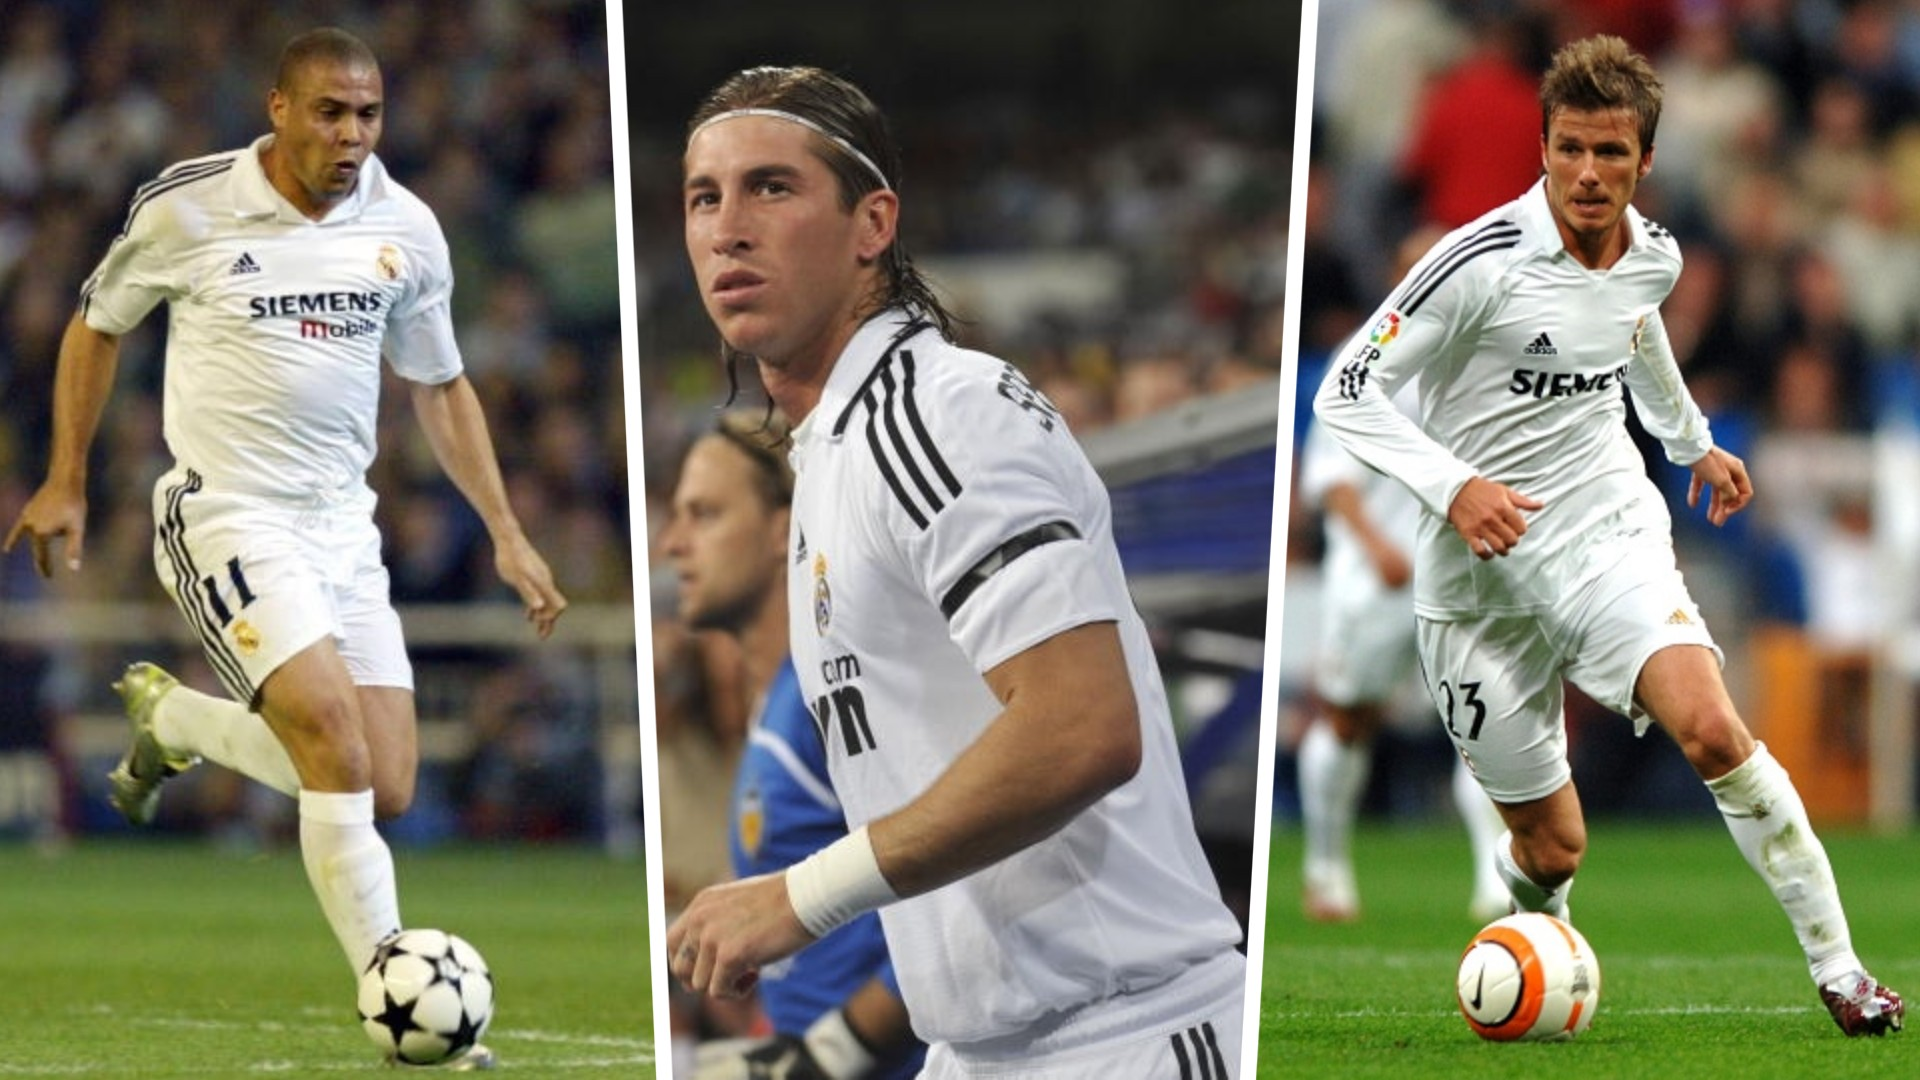 Sergio Ramos' Real Madrid debut - Who were his teammates and where are they now?